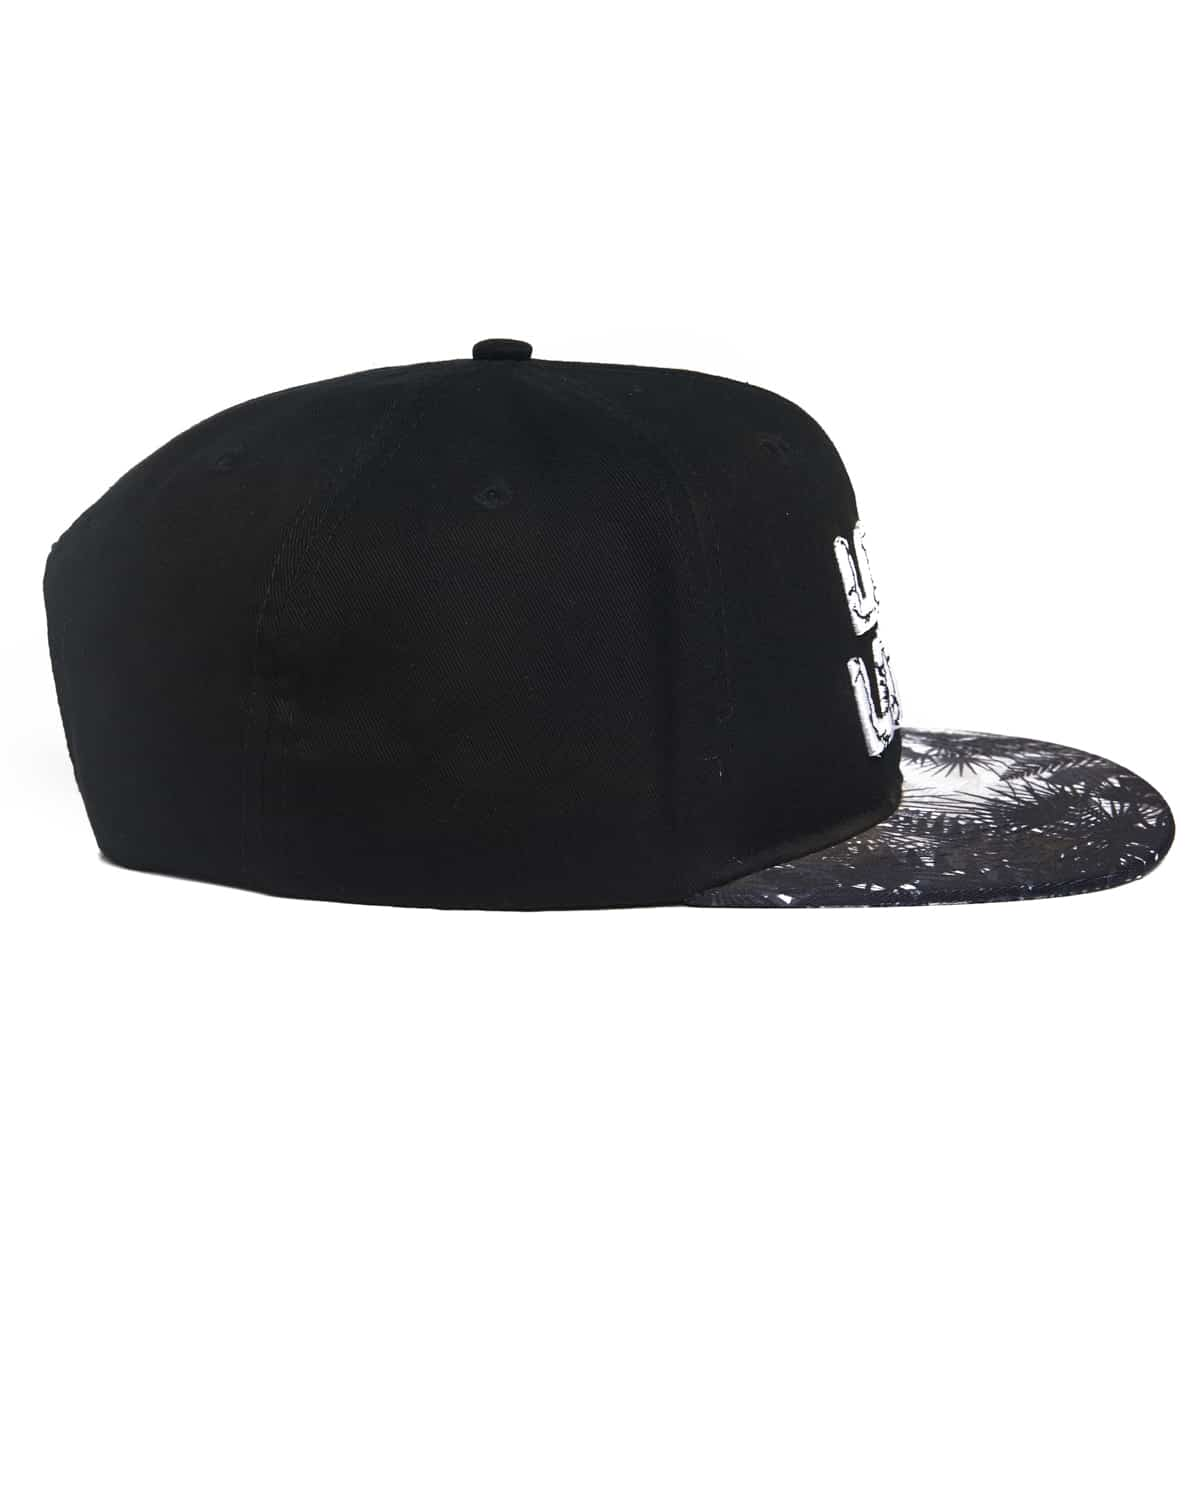 Lost Lands 'Logo' Snapback (Black/White)